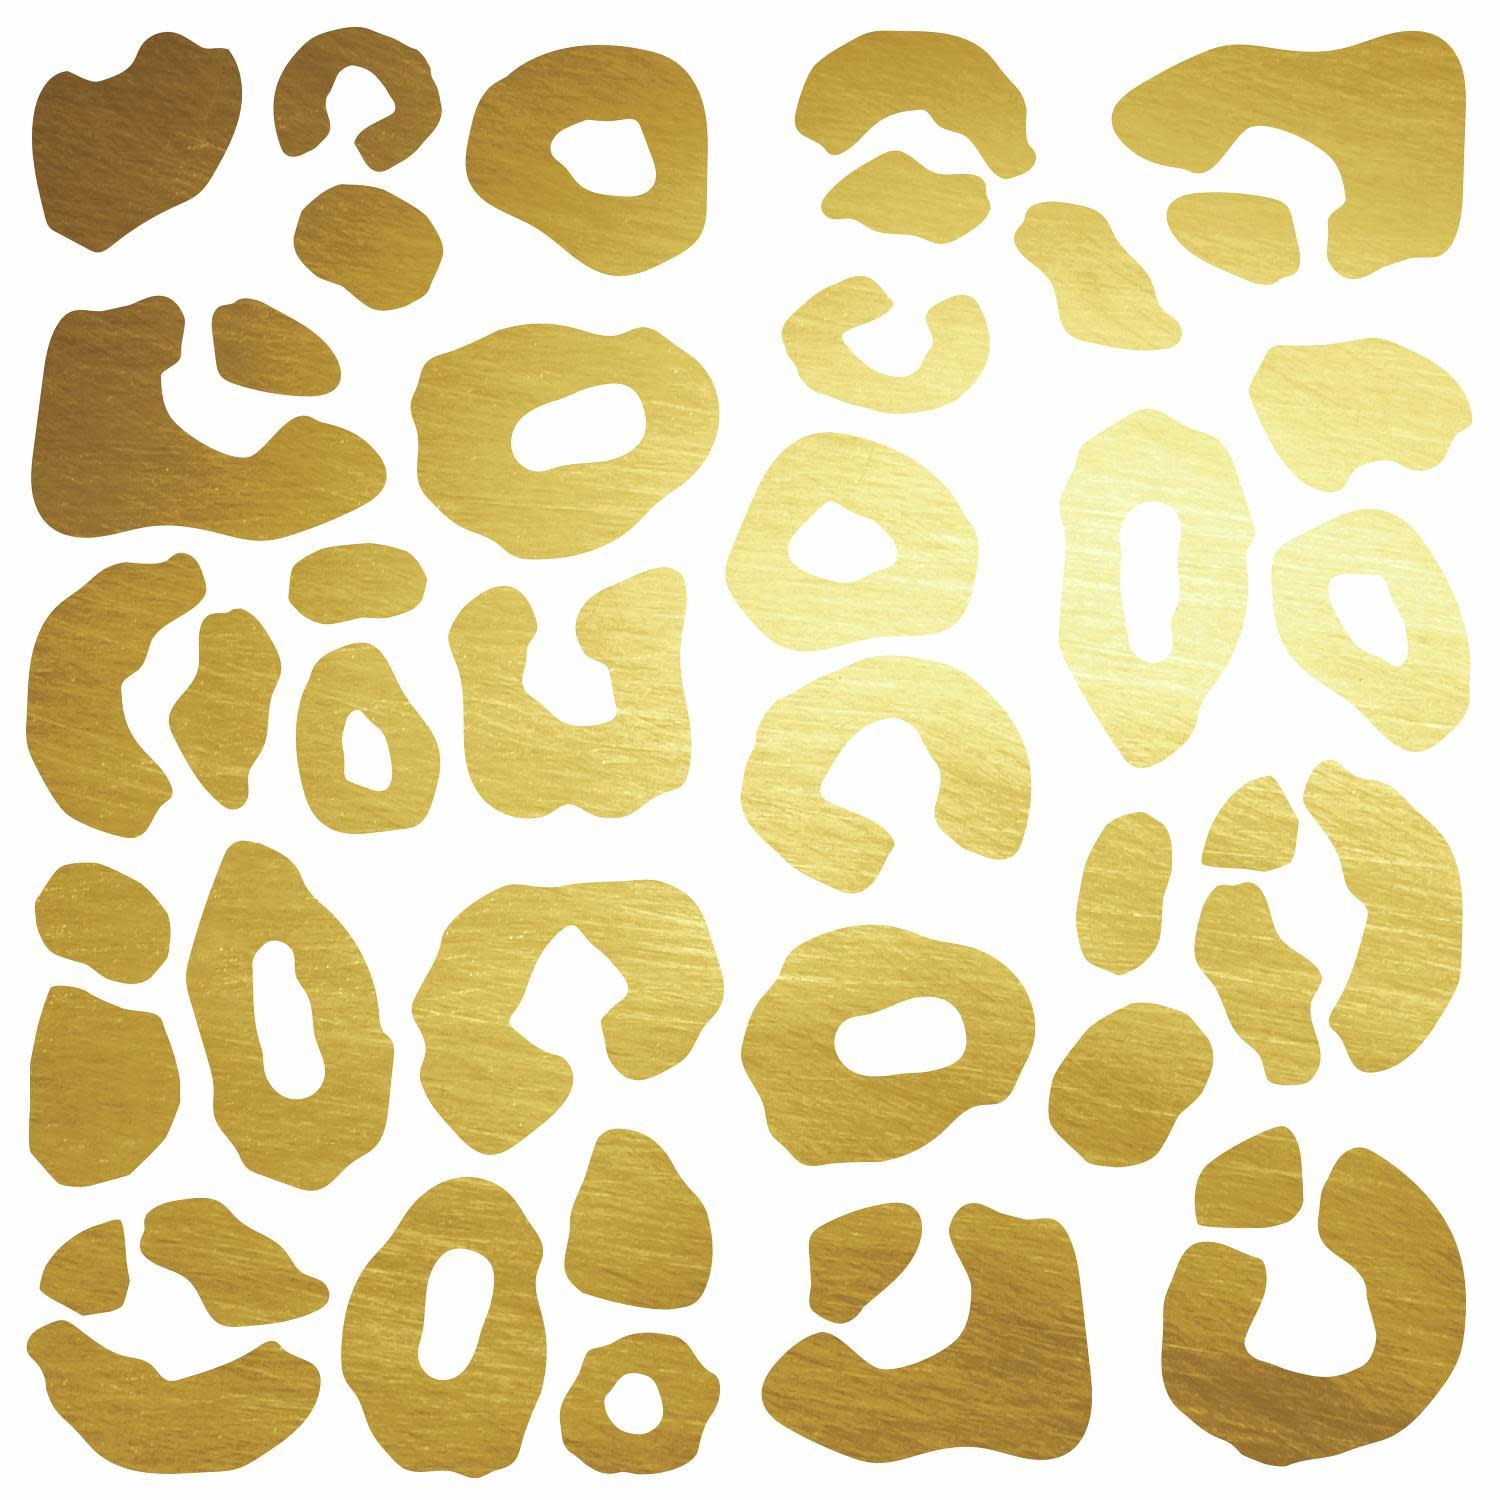 Leopard Spot Peel And Stick Wall Decals With Foil